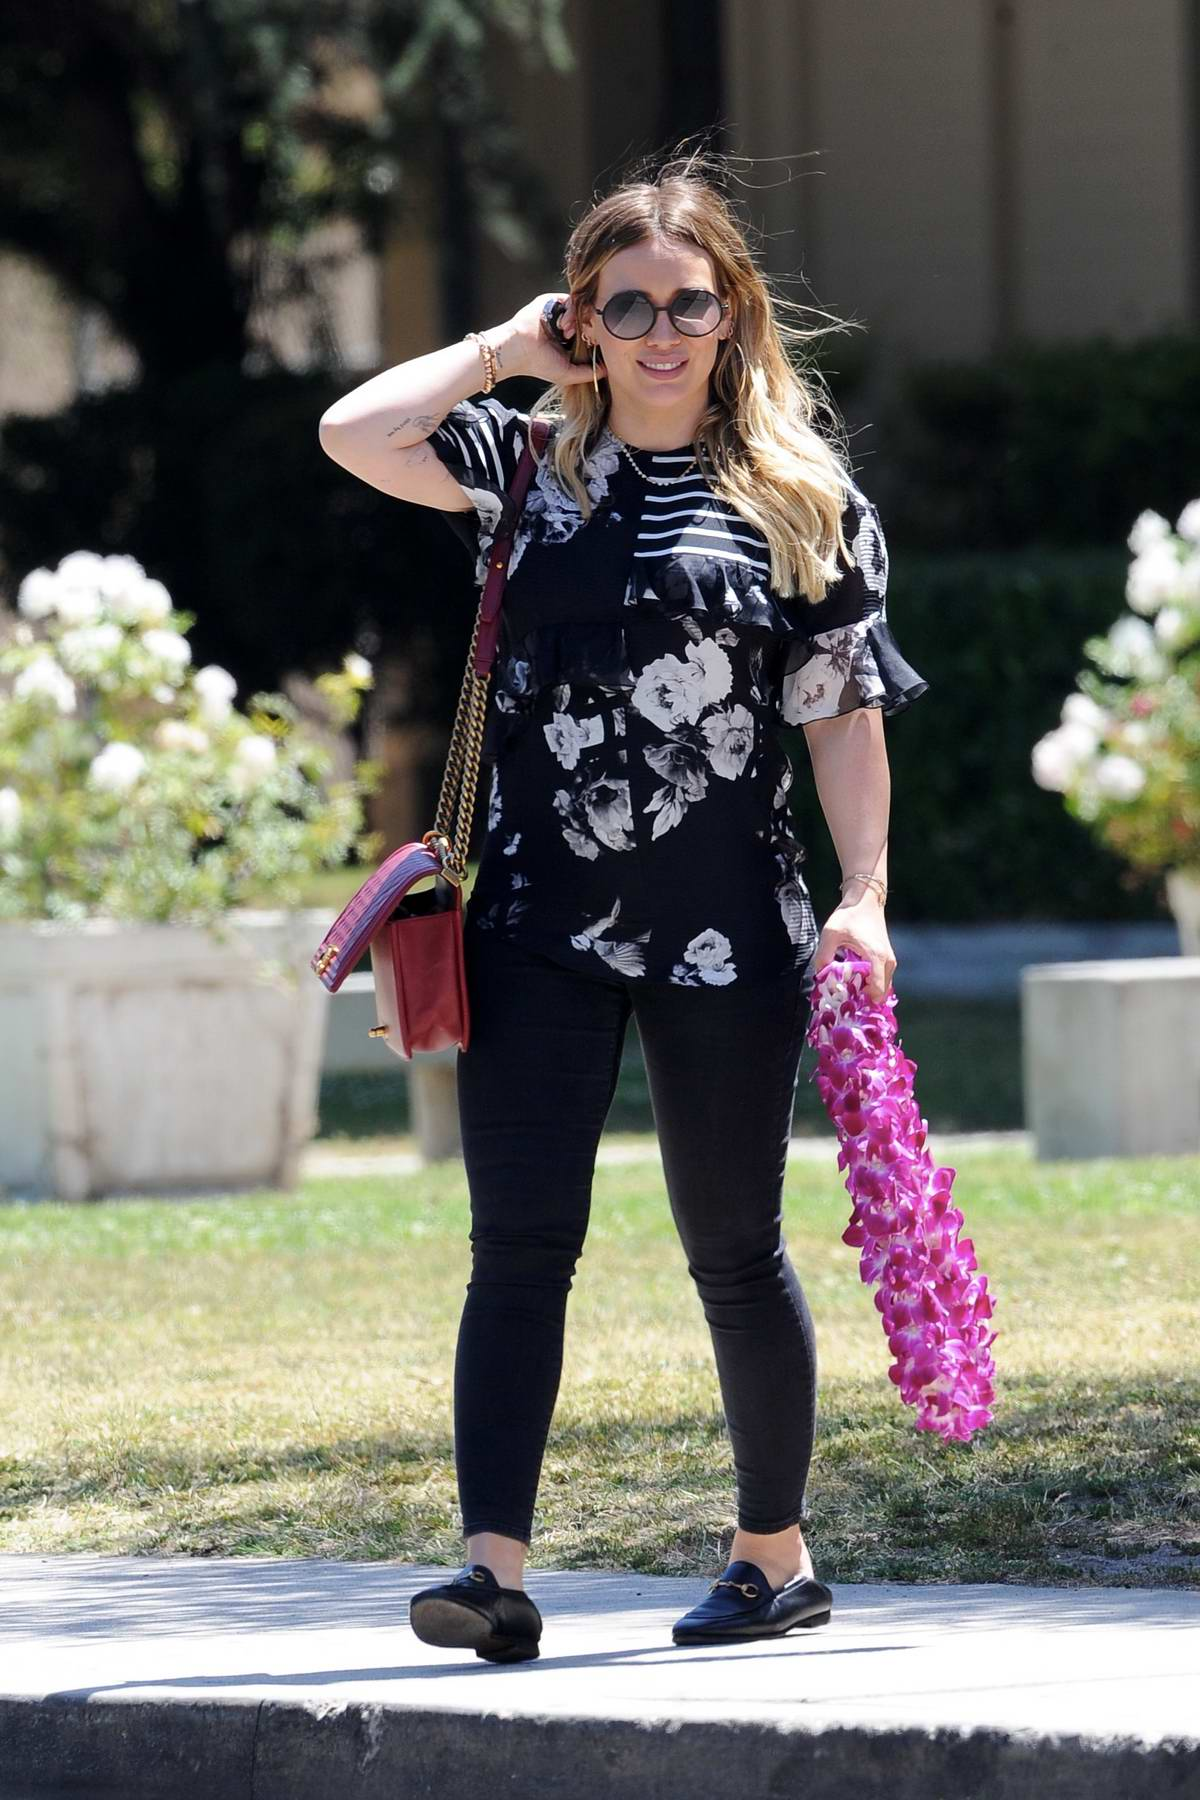 Hilary Duff shows off her baby bump while out with her son and boyfriend Matthew Koma in Studio City, Los Angeles